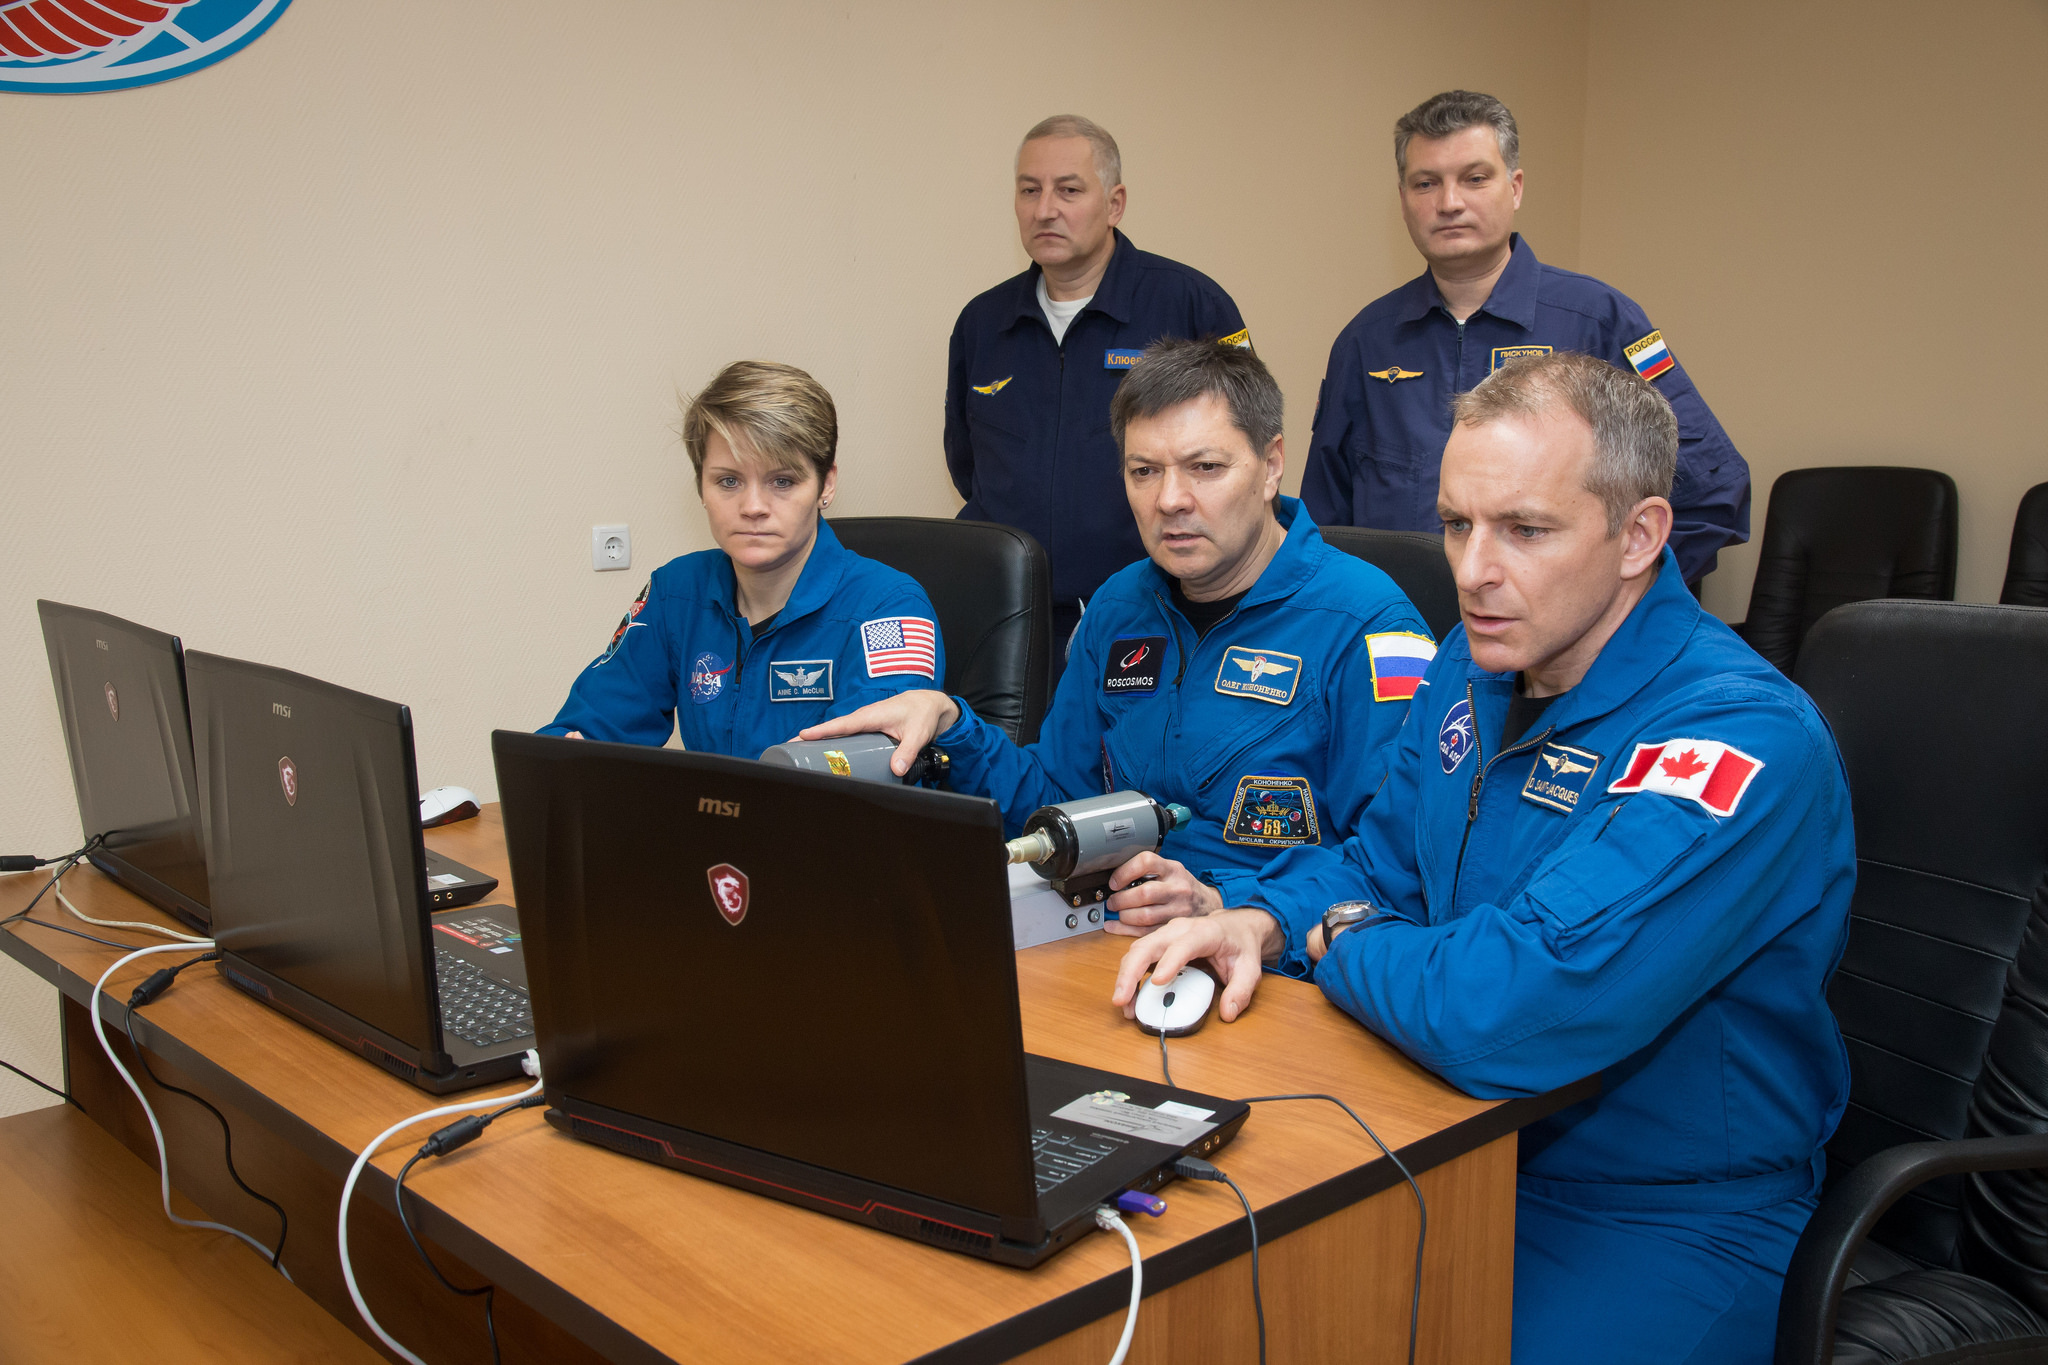 Anne McClain of NASA (left), Oleg Kononenko of Roscosmos (center) and David Saint-Jacques of the Canadian Space Agency (right) practice rendezvous techniques on a laptop computer Nov. 27 as part of their pre-launch training.